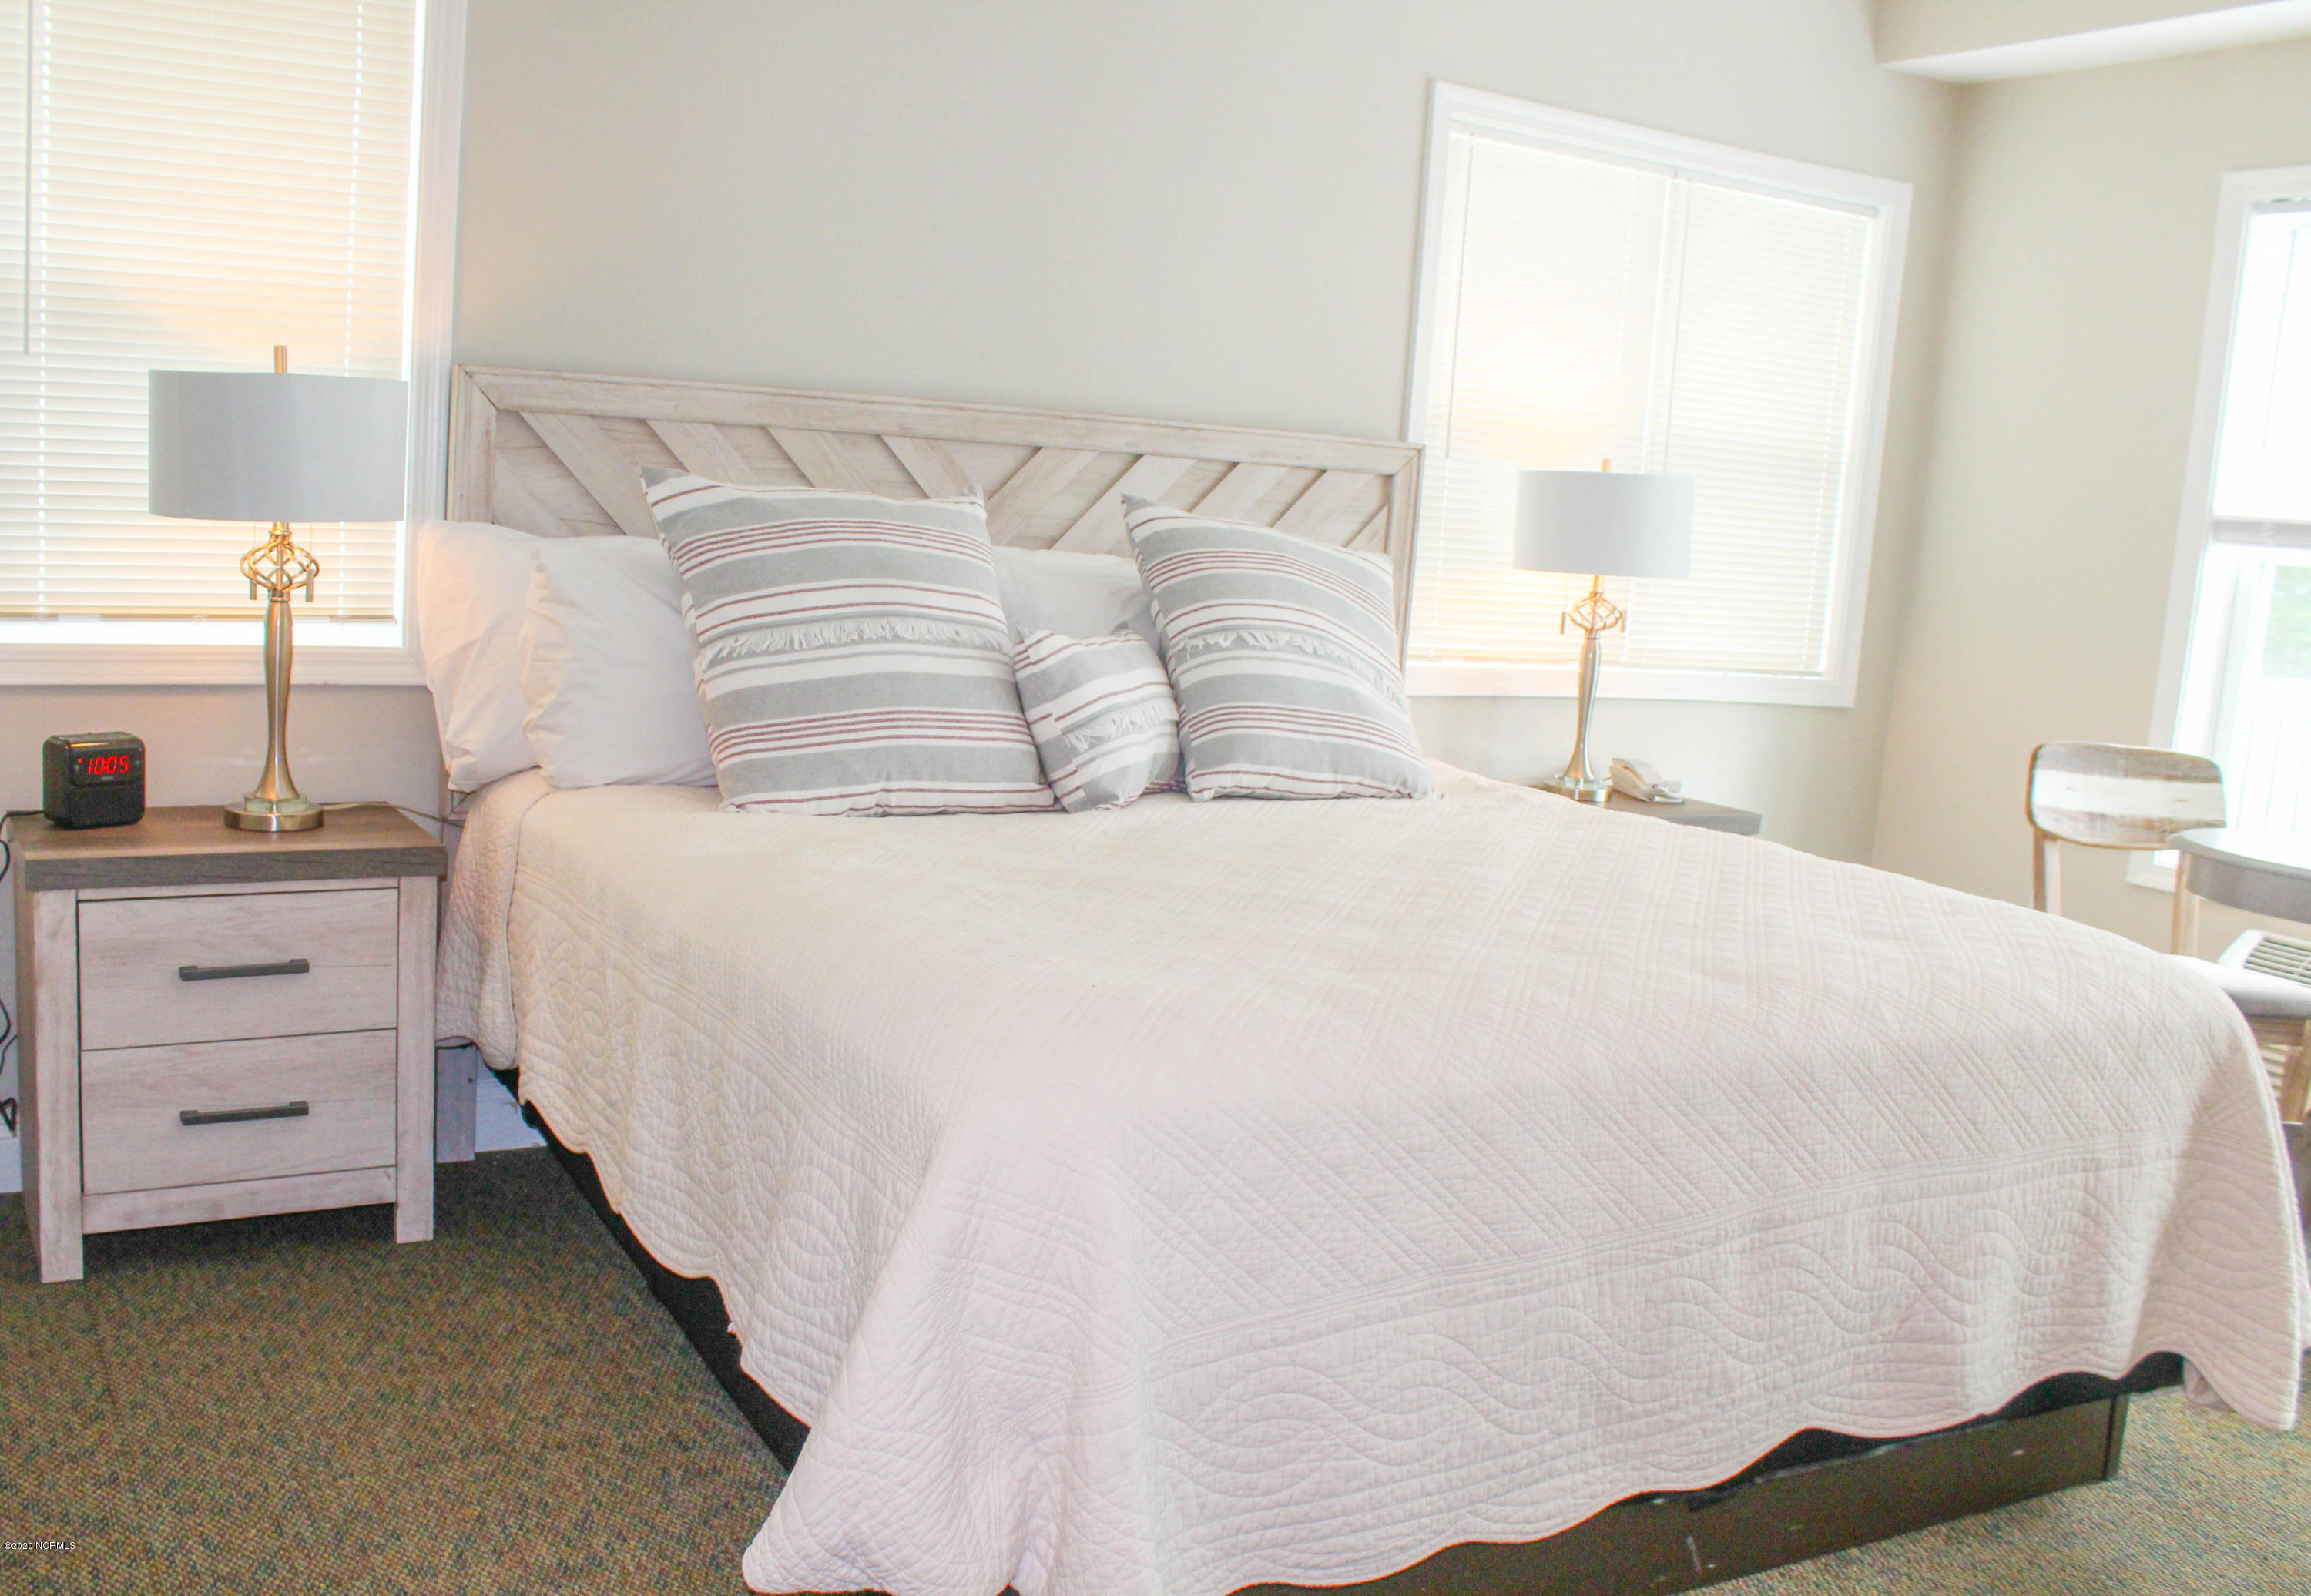 702 Moore Street, Southport, North Carolina 28461, 1 Bedroom Bedrooms, 2 Rooms Rooms,1 BathroomBathrooms,Condominium,For sale,Moore,100219512